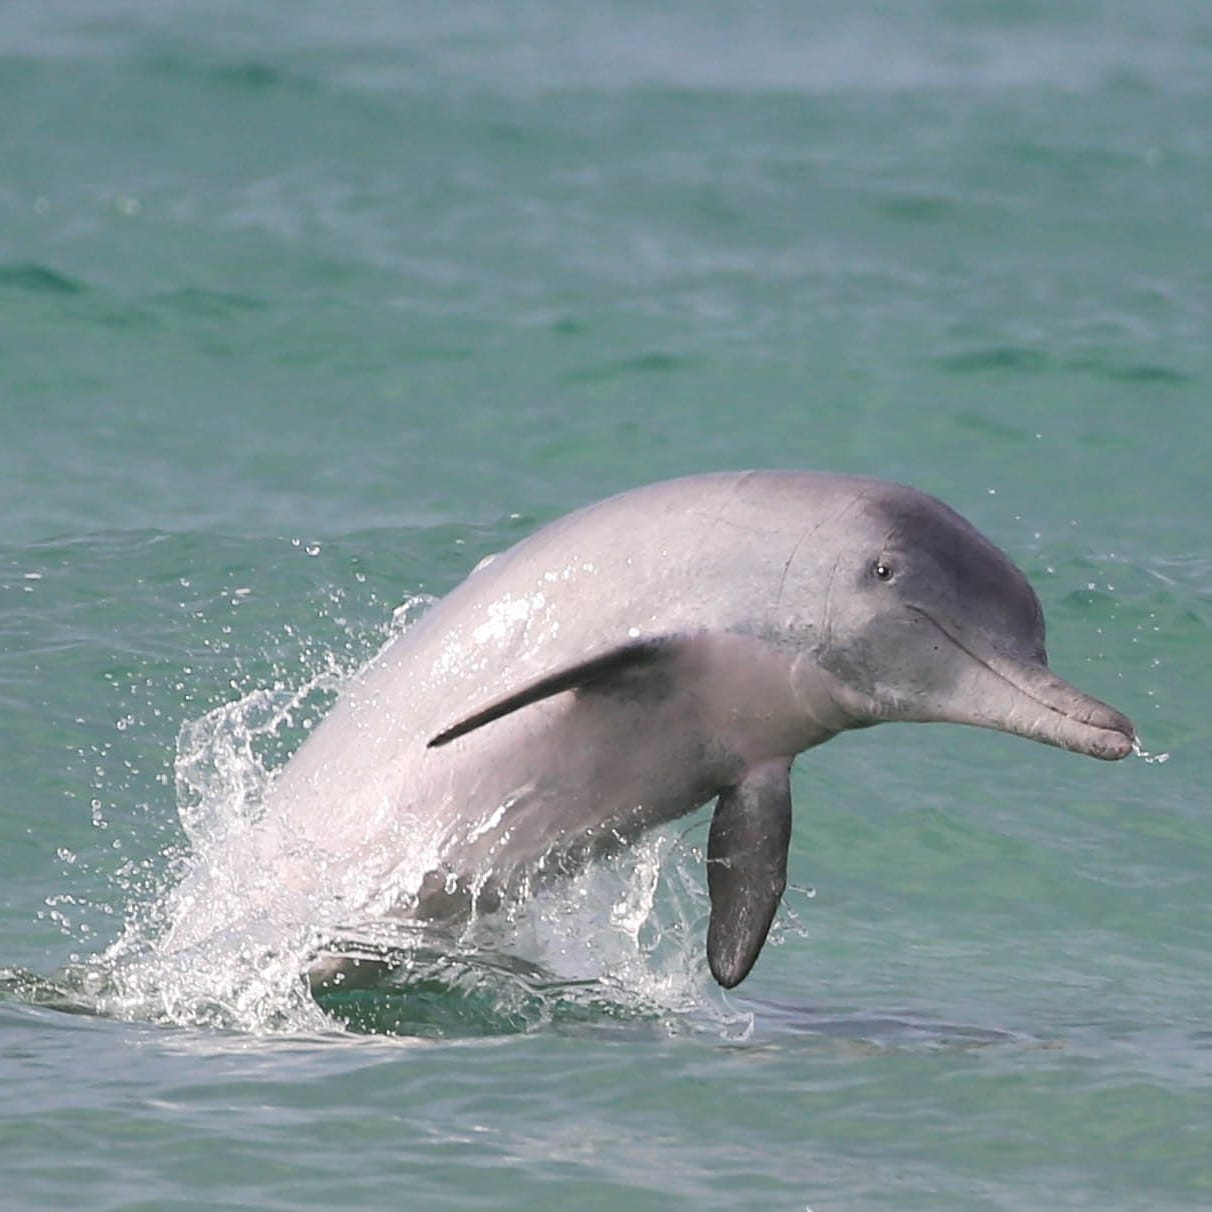 A neonate bottlenose dolphin near Moreton Bay Queensland © Dolphin Research Australia